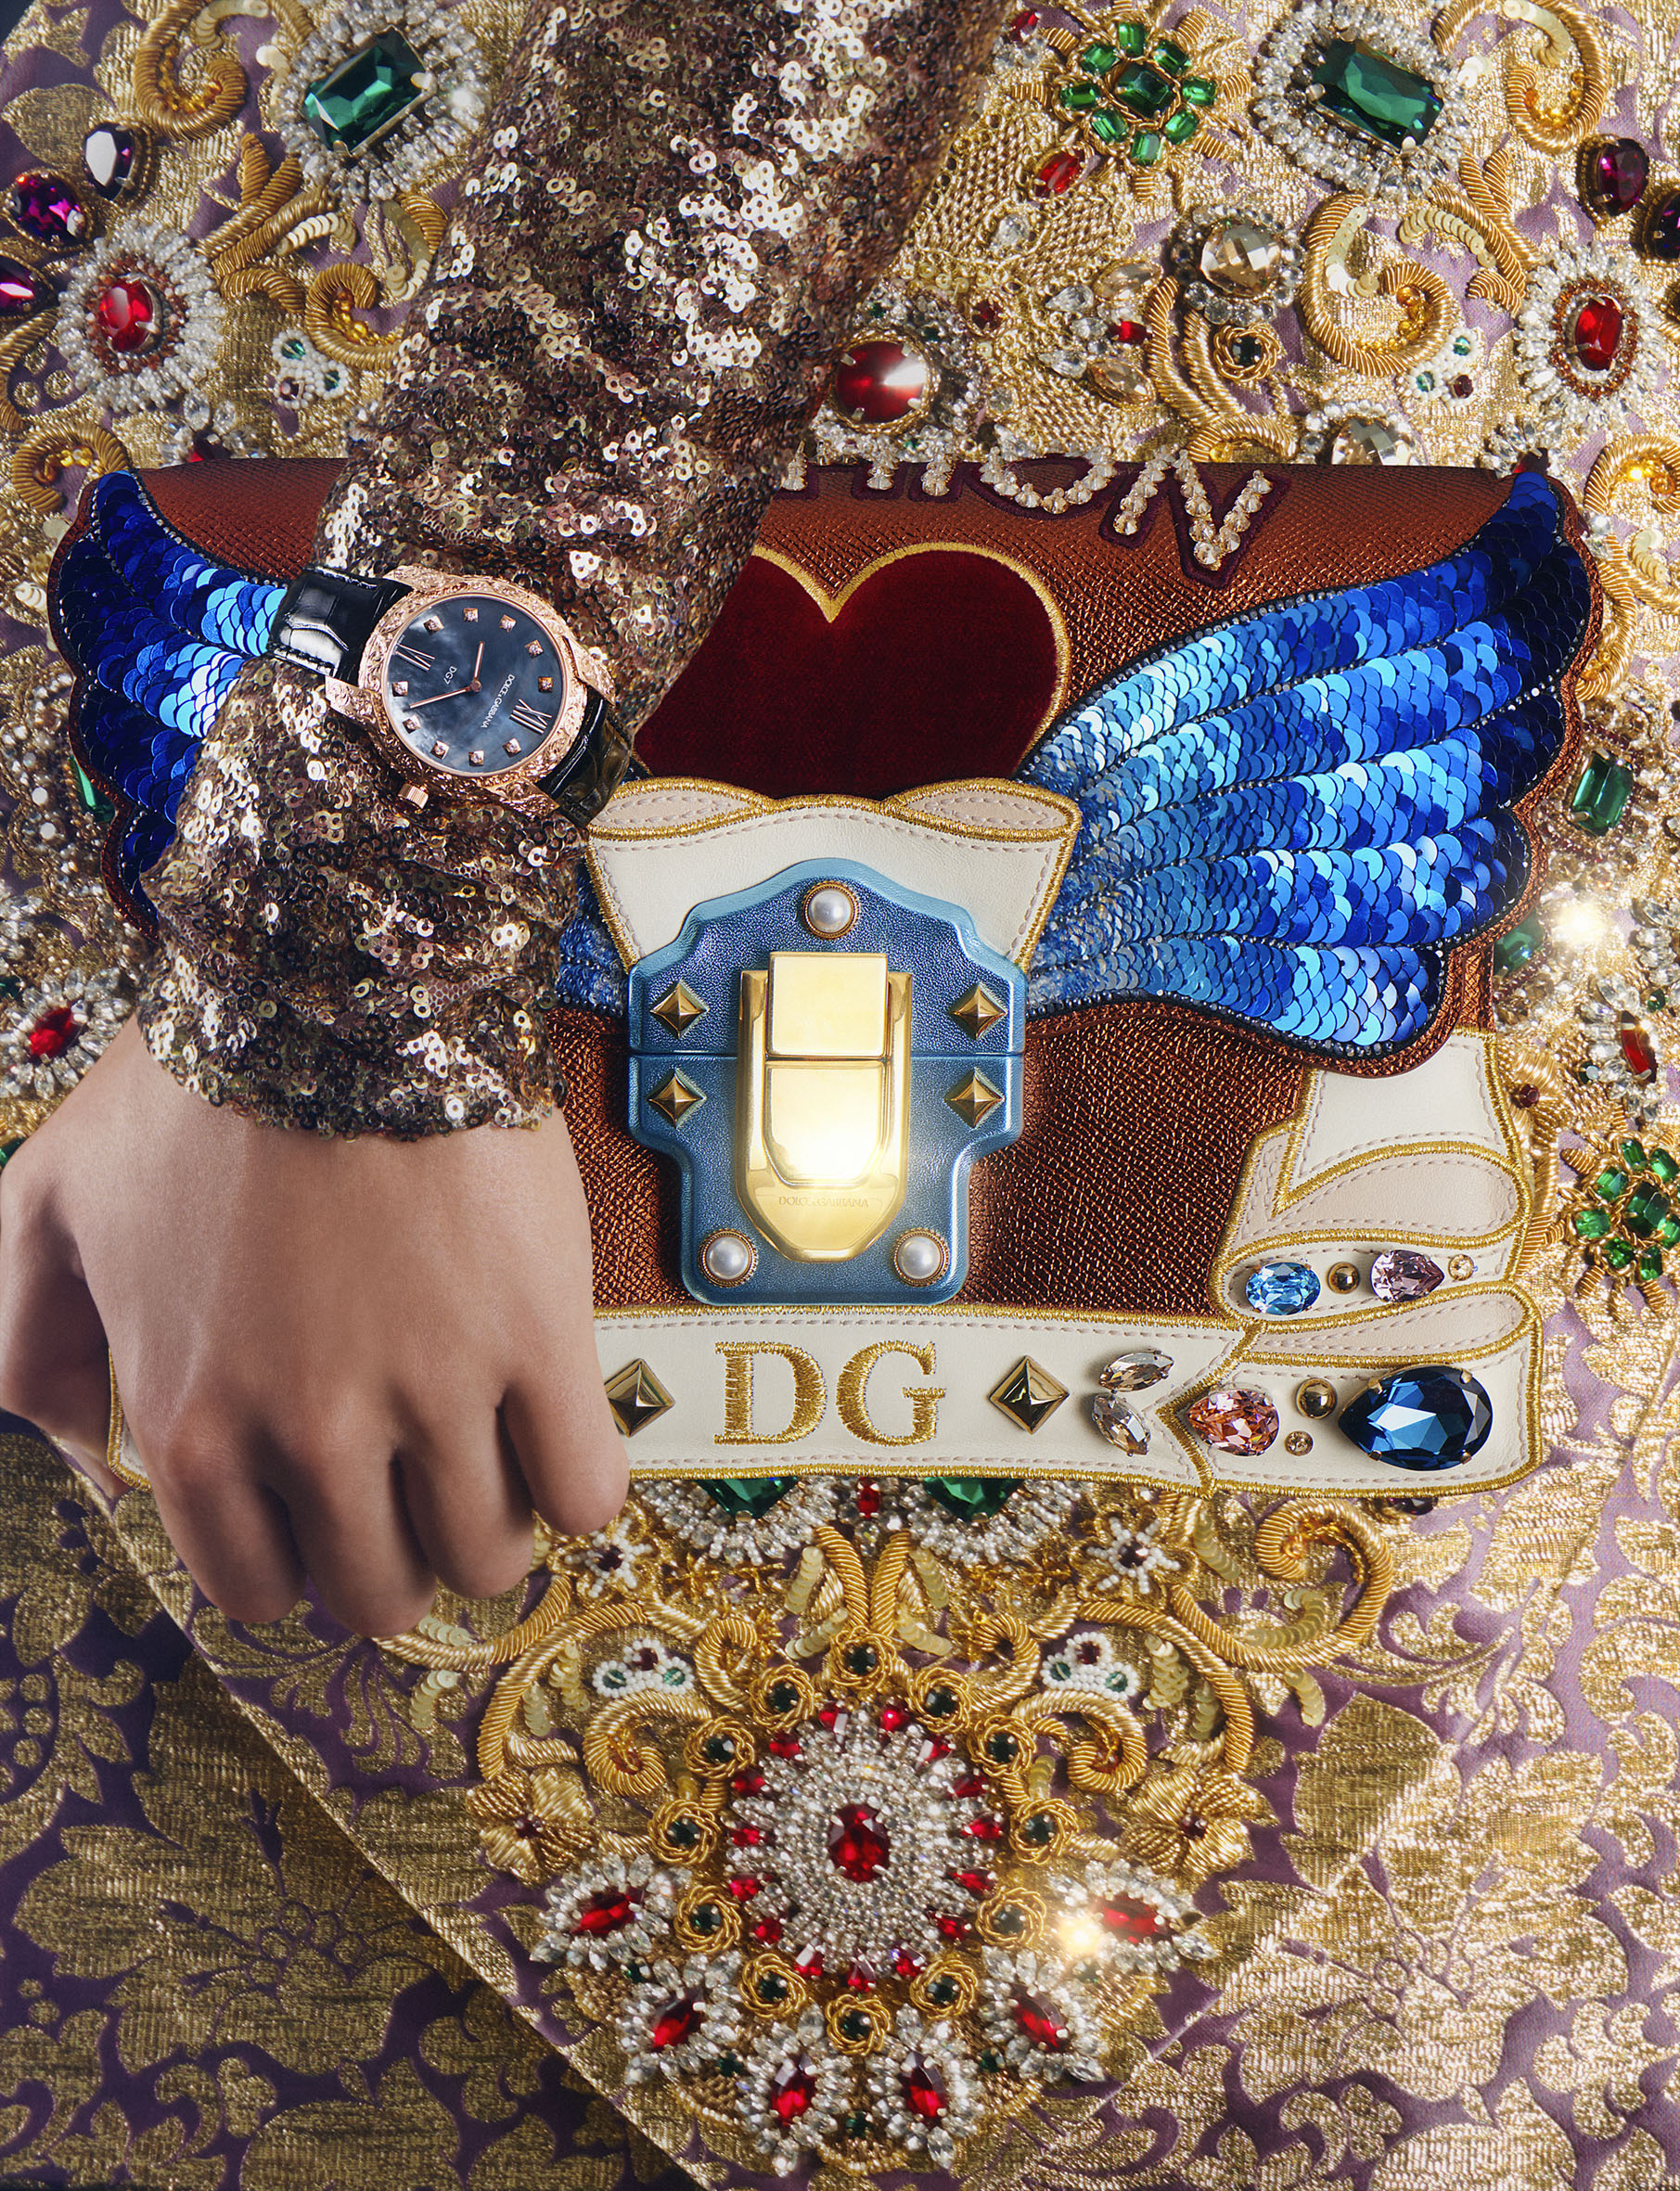 D&G / George McLeod / Luxure Magazine